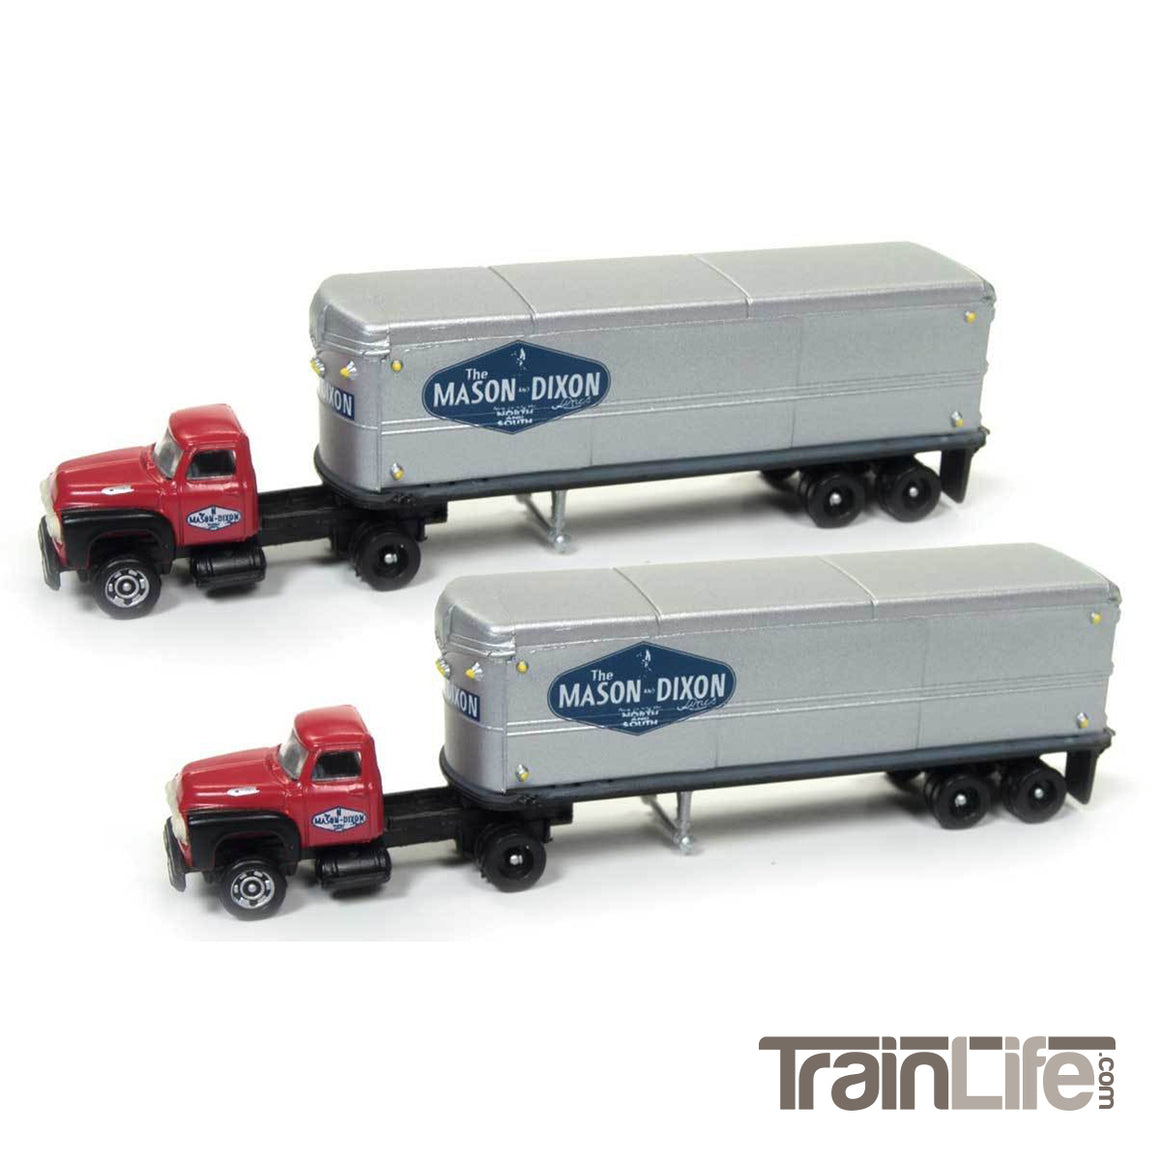 N Scale: 1954 Ford Tractor & Trailer Set - The Mason Dixon Line - 2 Pack